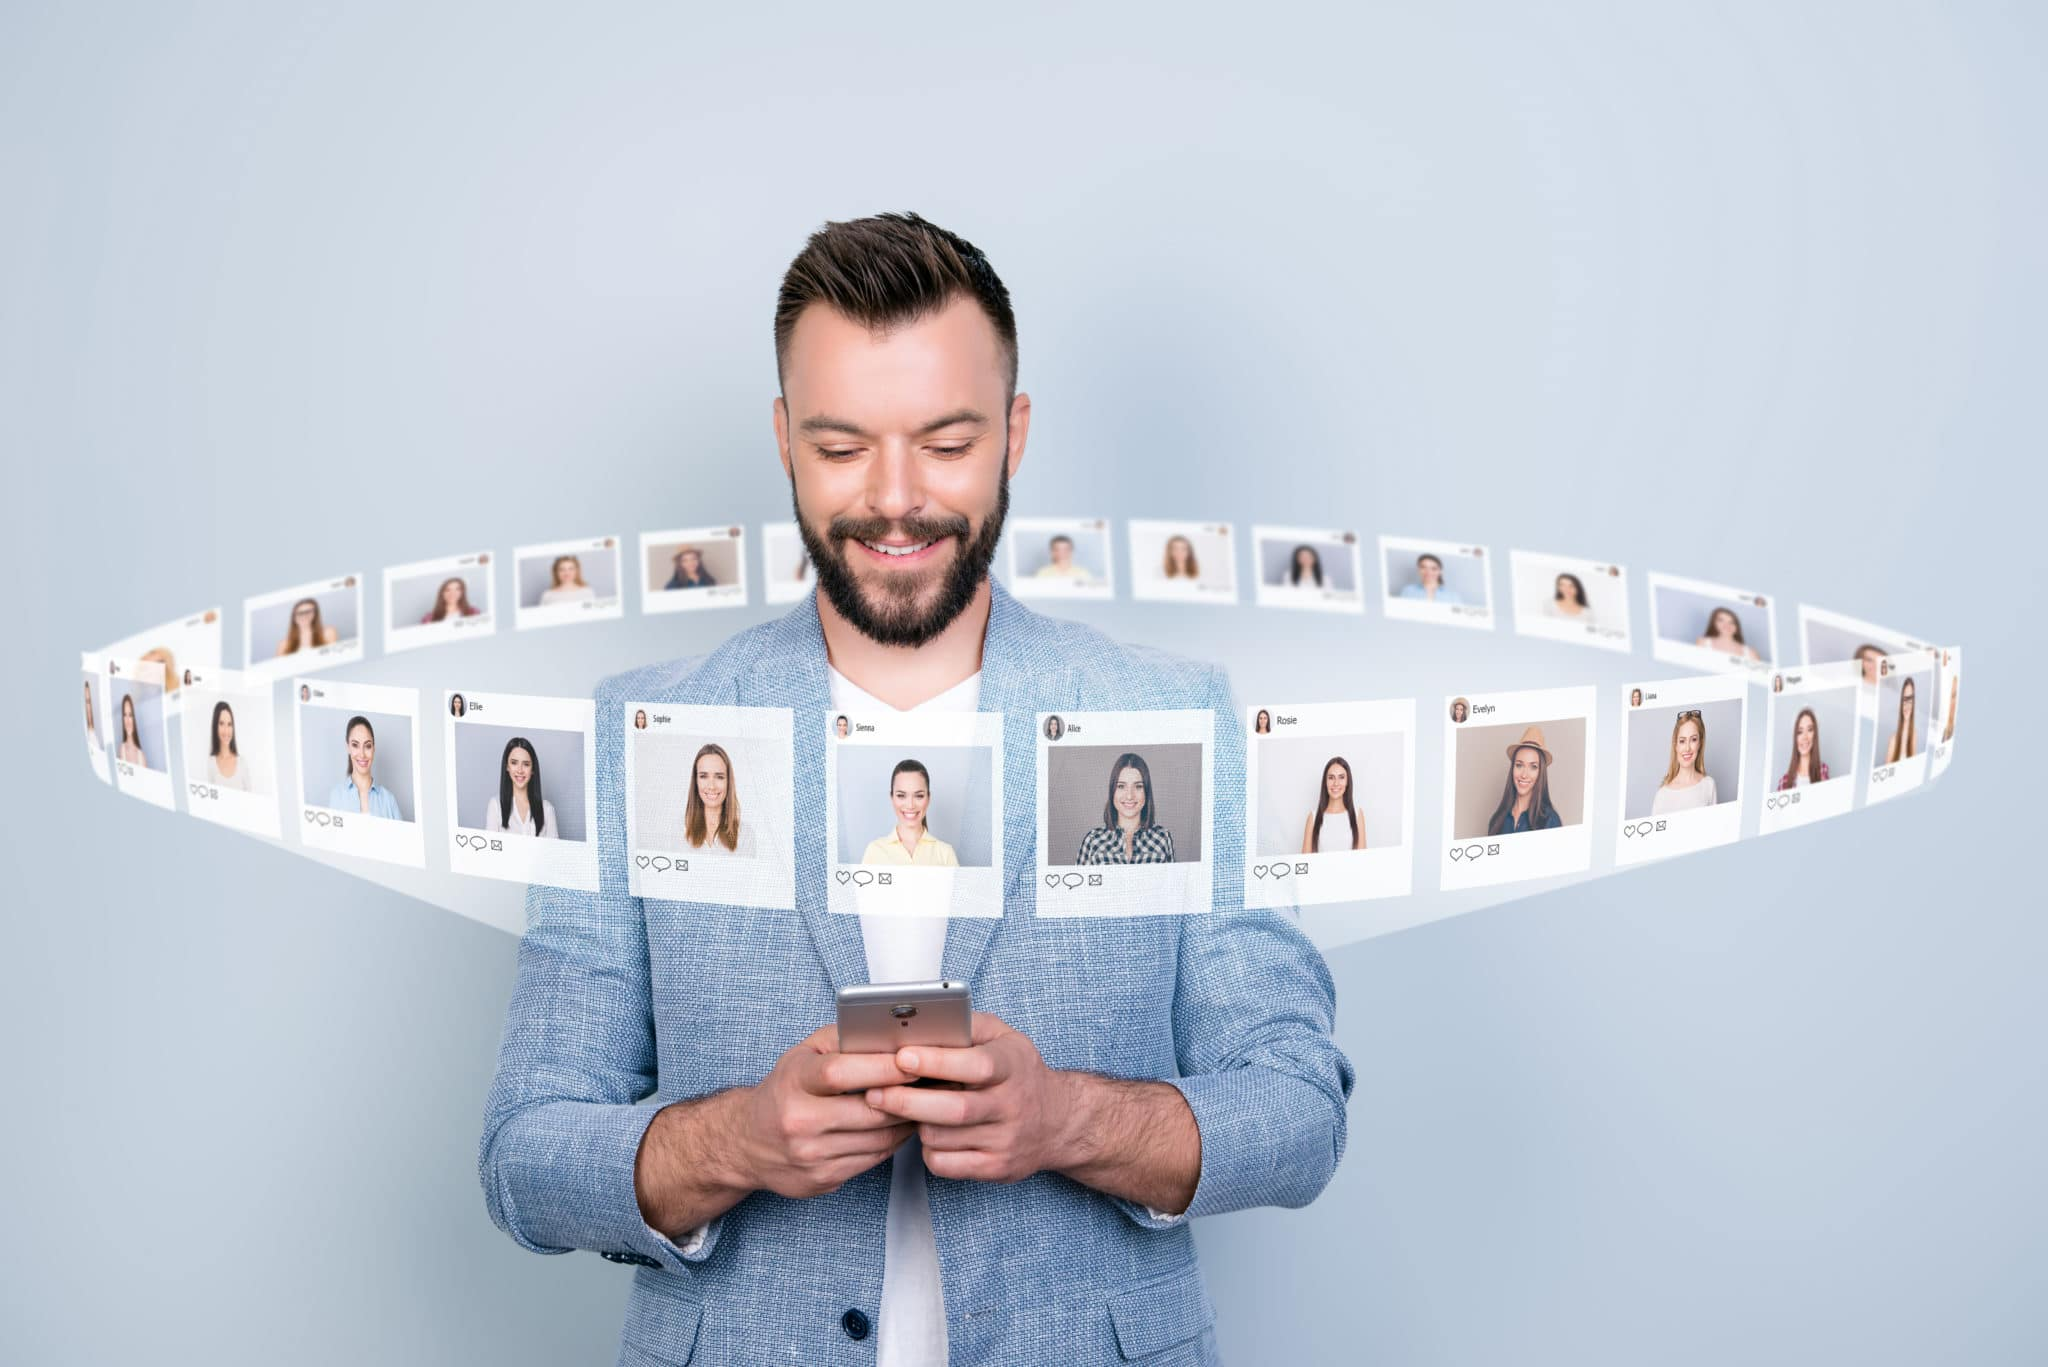 Dating Profile Examples, Dating Profile